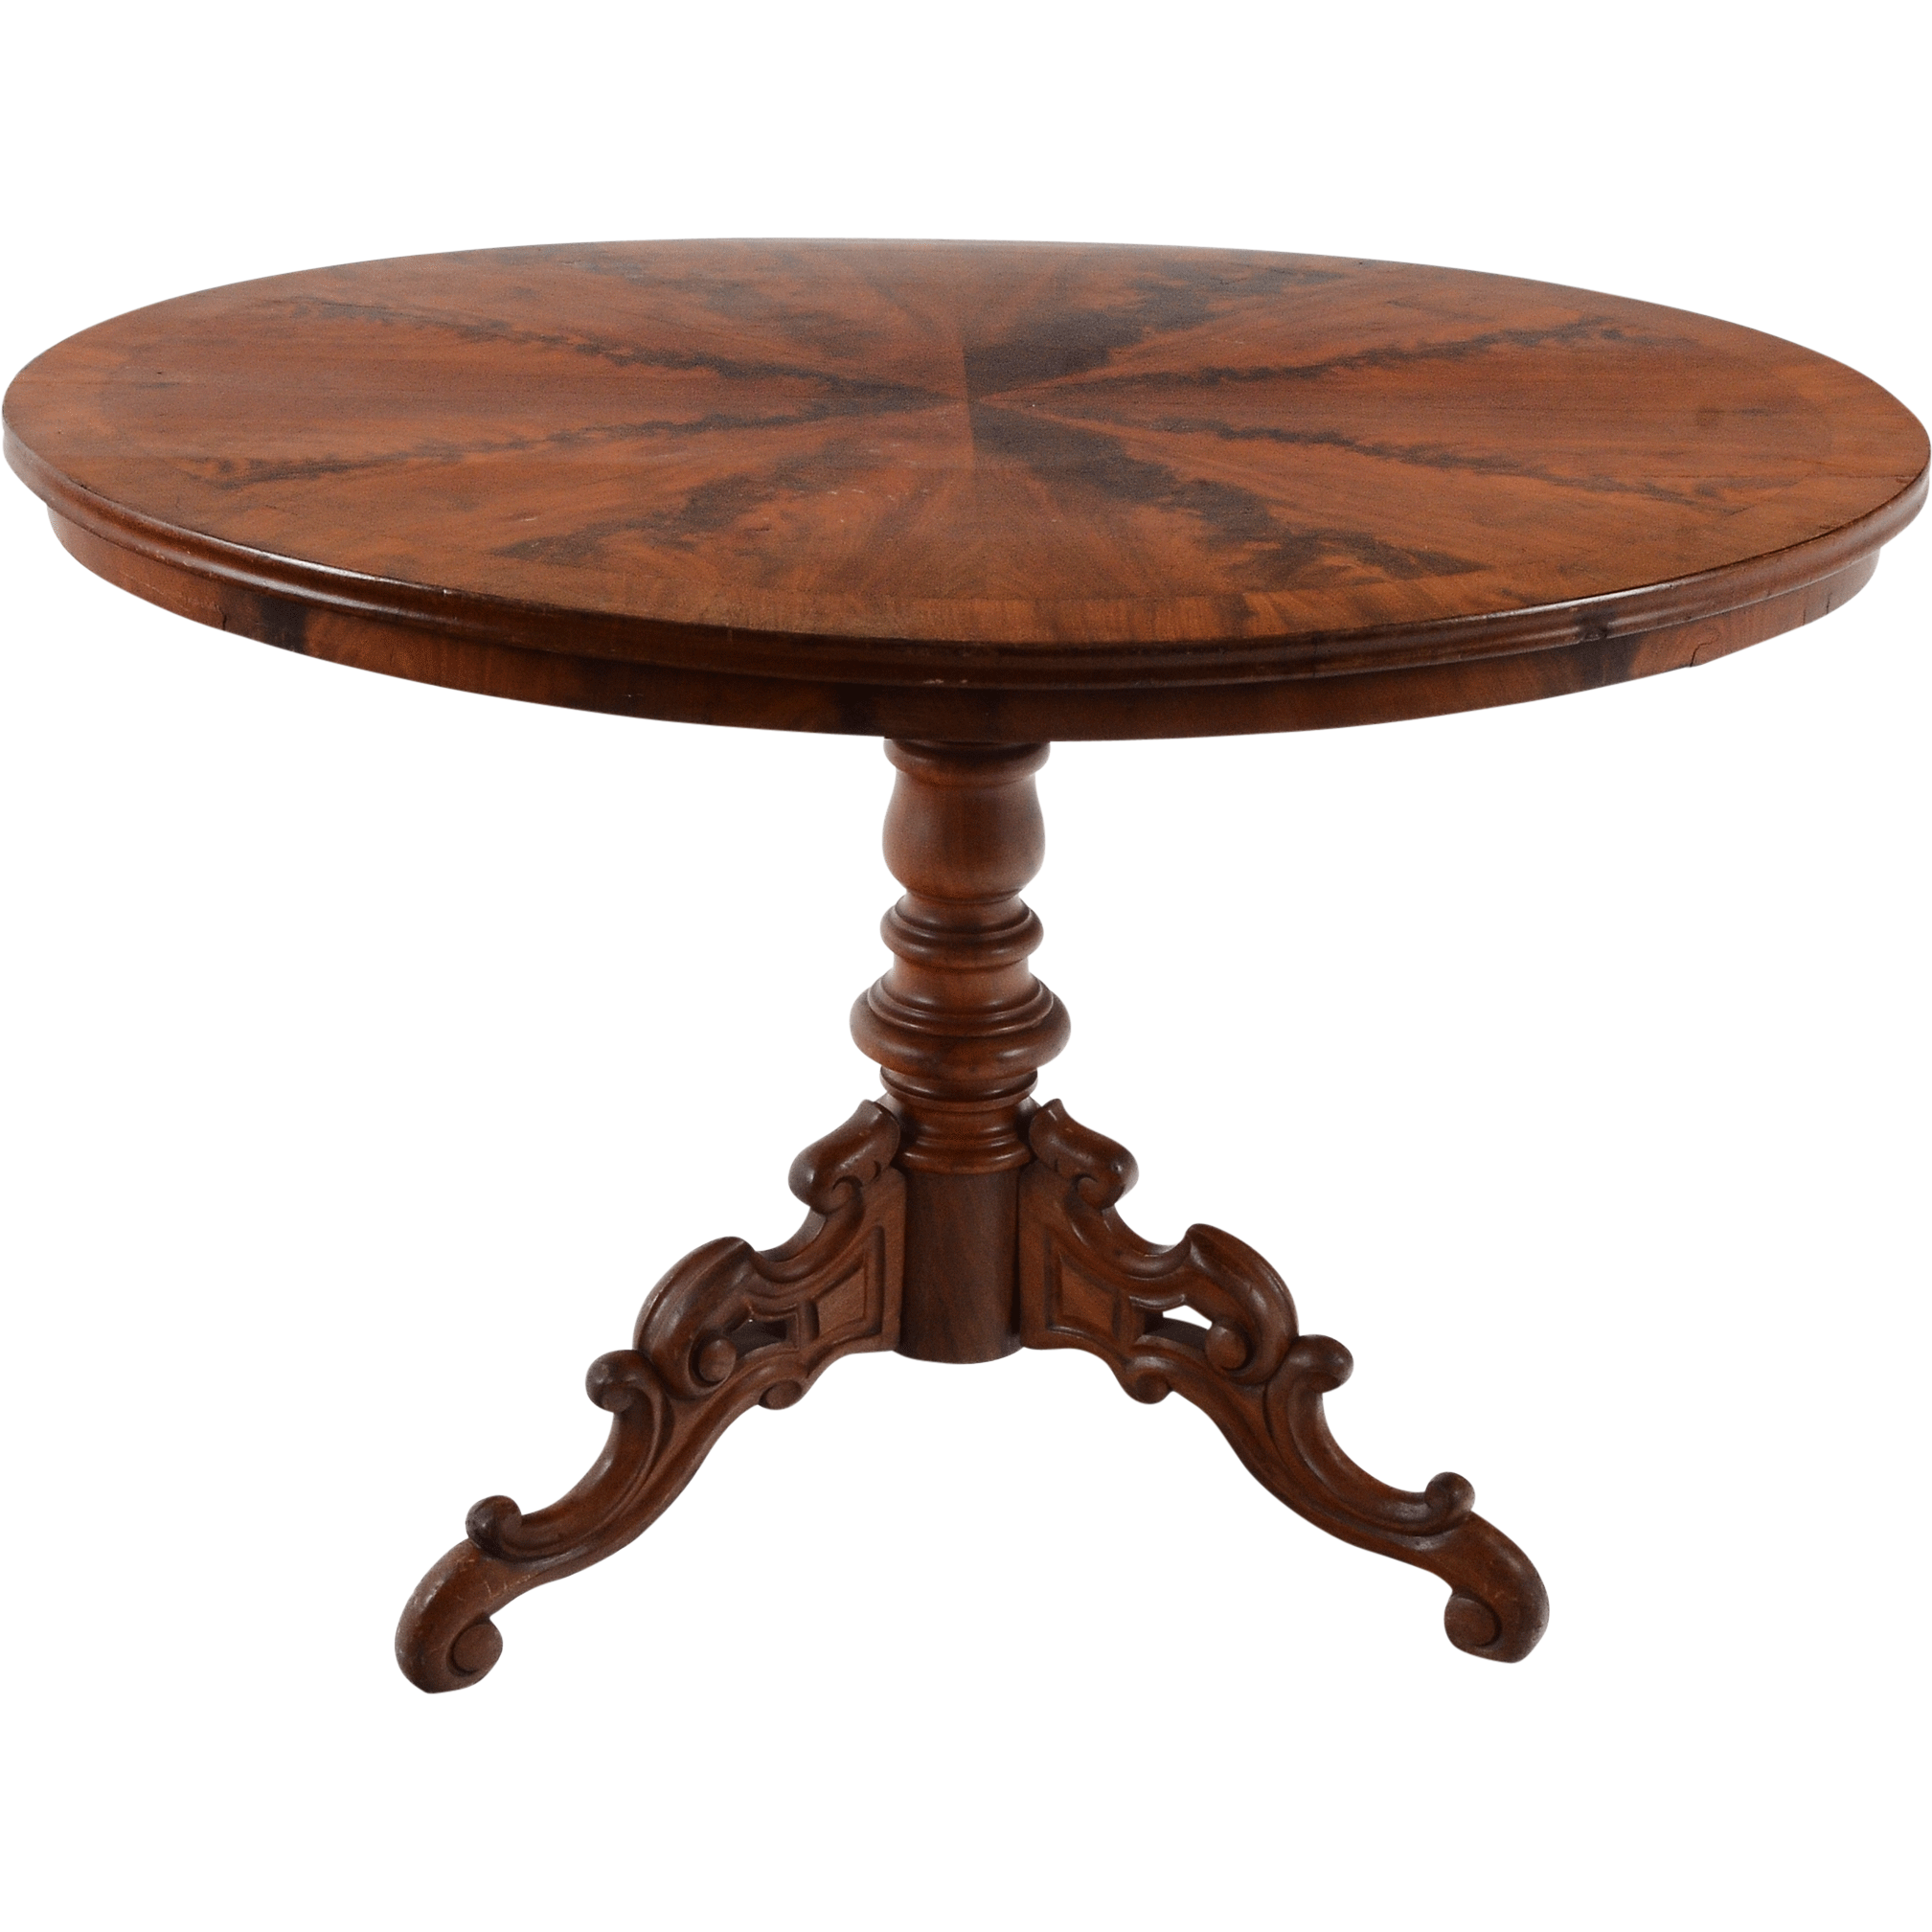 Antique American Victorian Flame Mahogany Oval Table